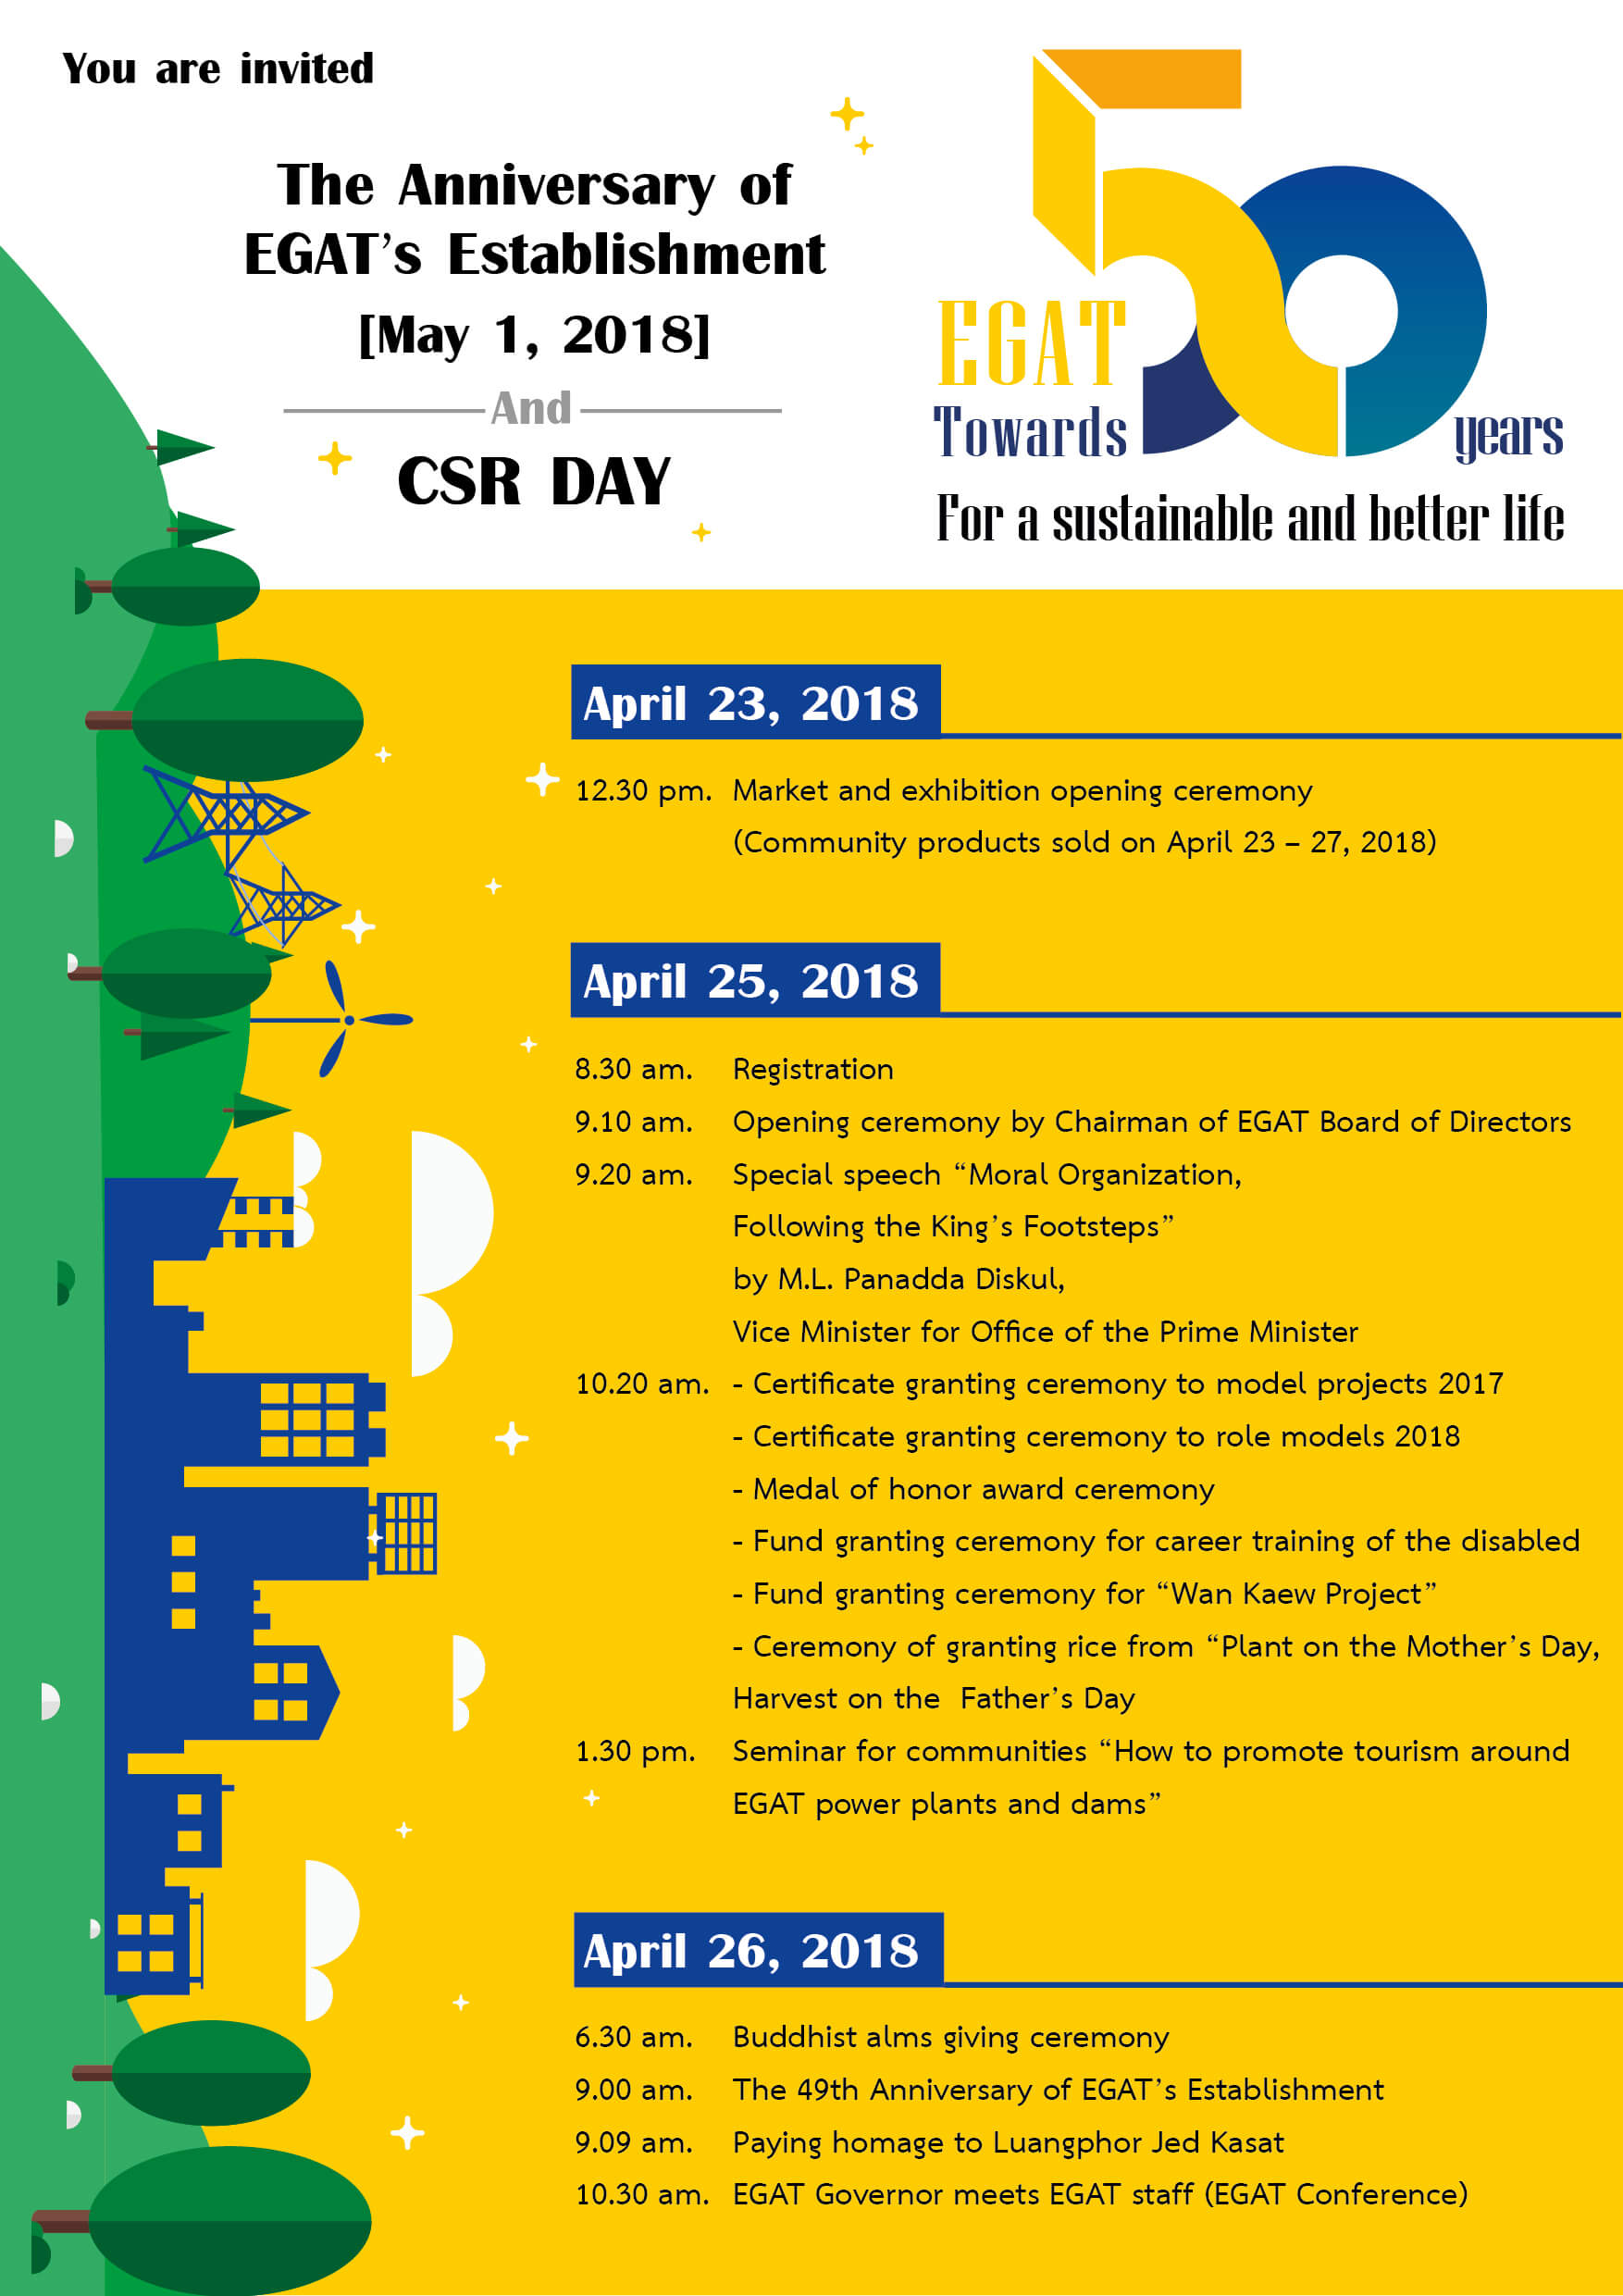 EGAT Towards 50 Years - The Anniversary of EGAT's Establishment and CSR Day